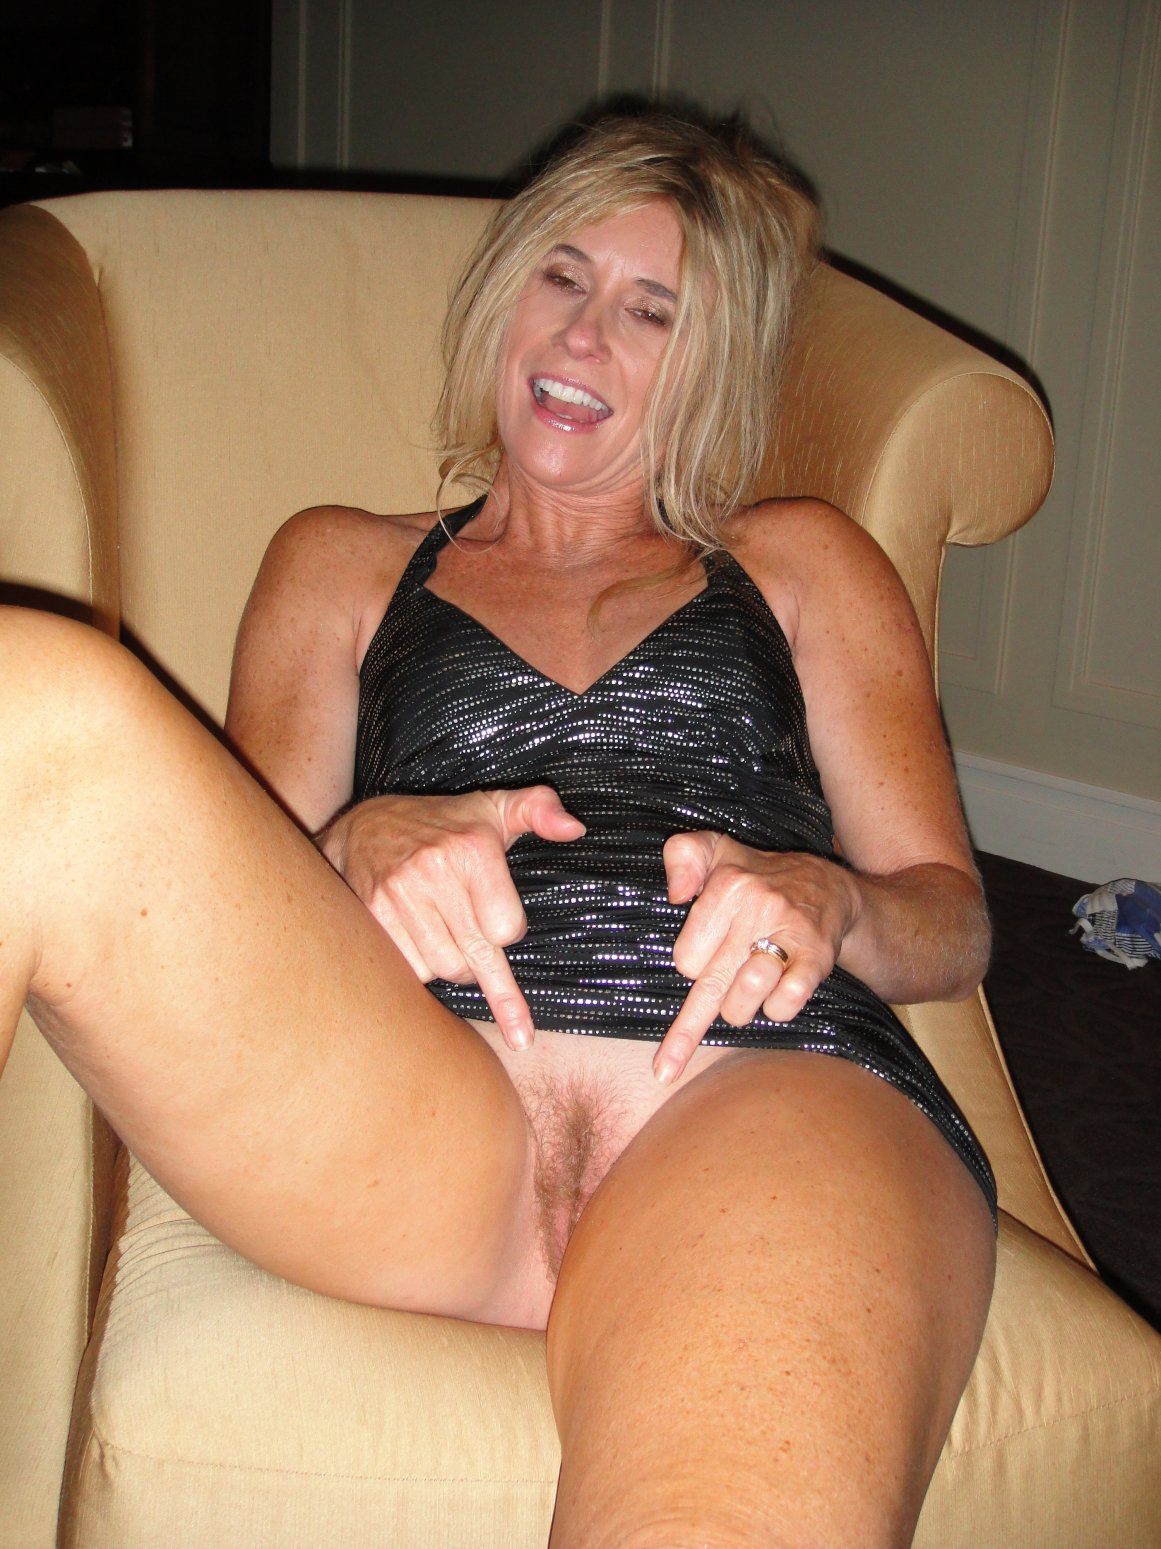 Opinion you mature pics chicks hairy milf what phrase